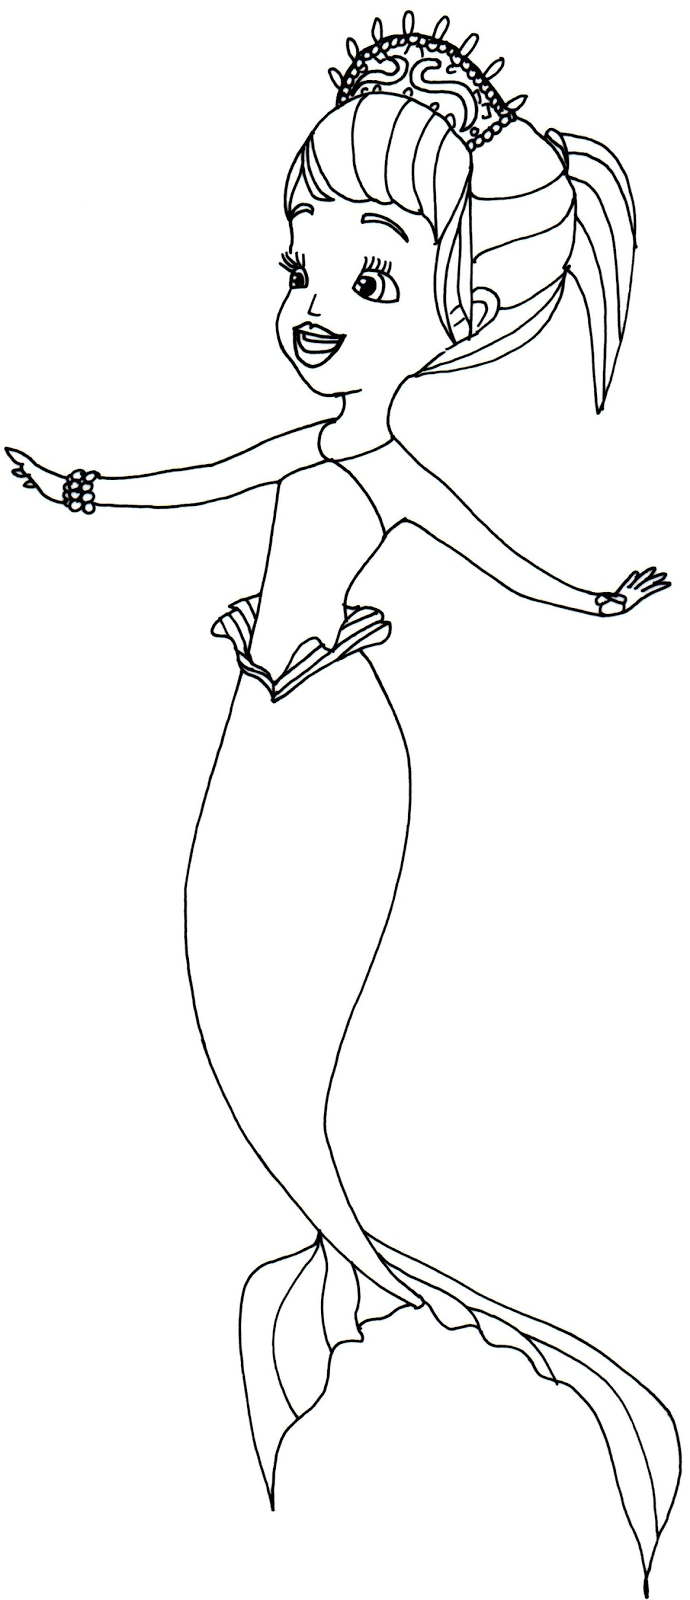 Sofia The First Coloring Pages Oona Sofia the First Coloring Page